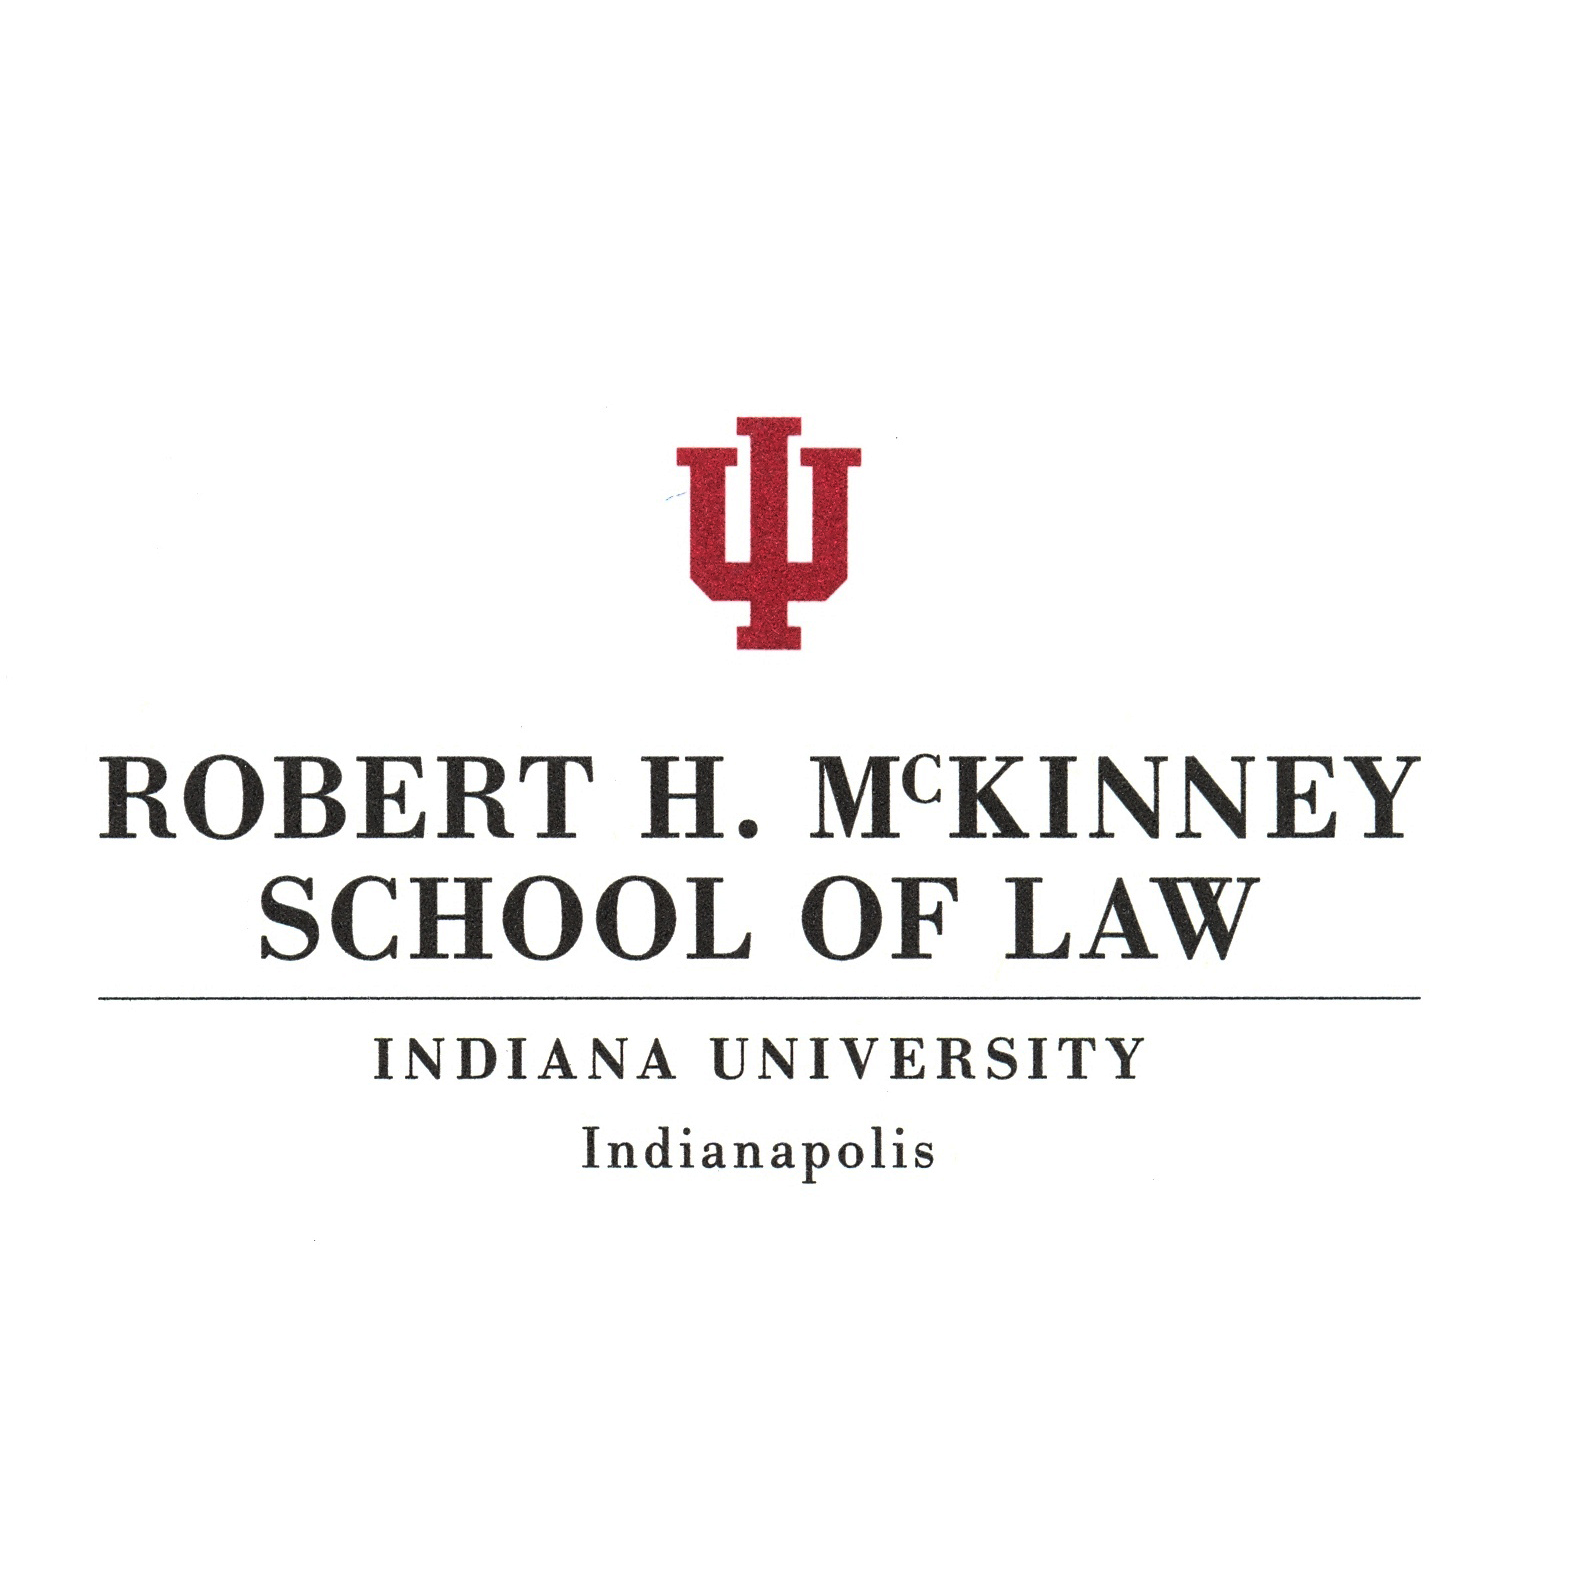 Robert H. McKinney School of Law - Indiana University